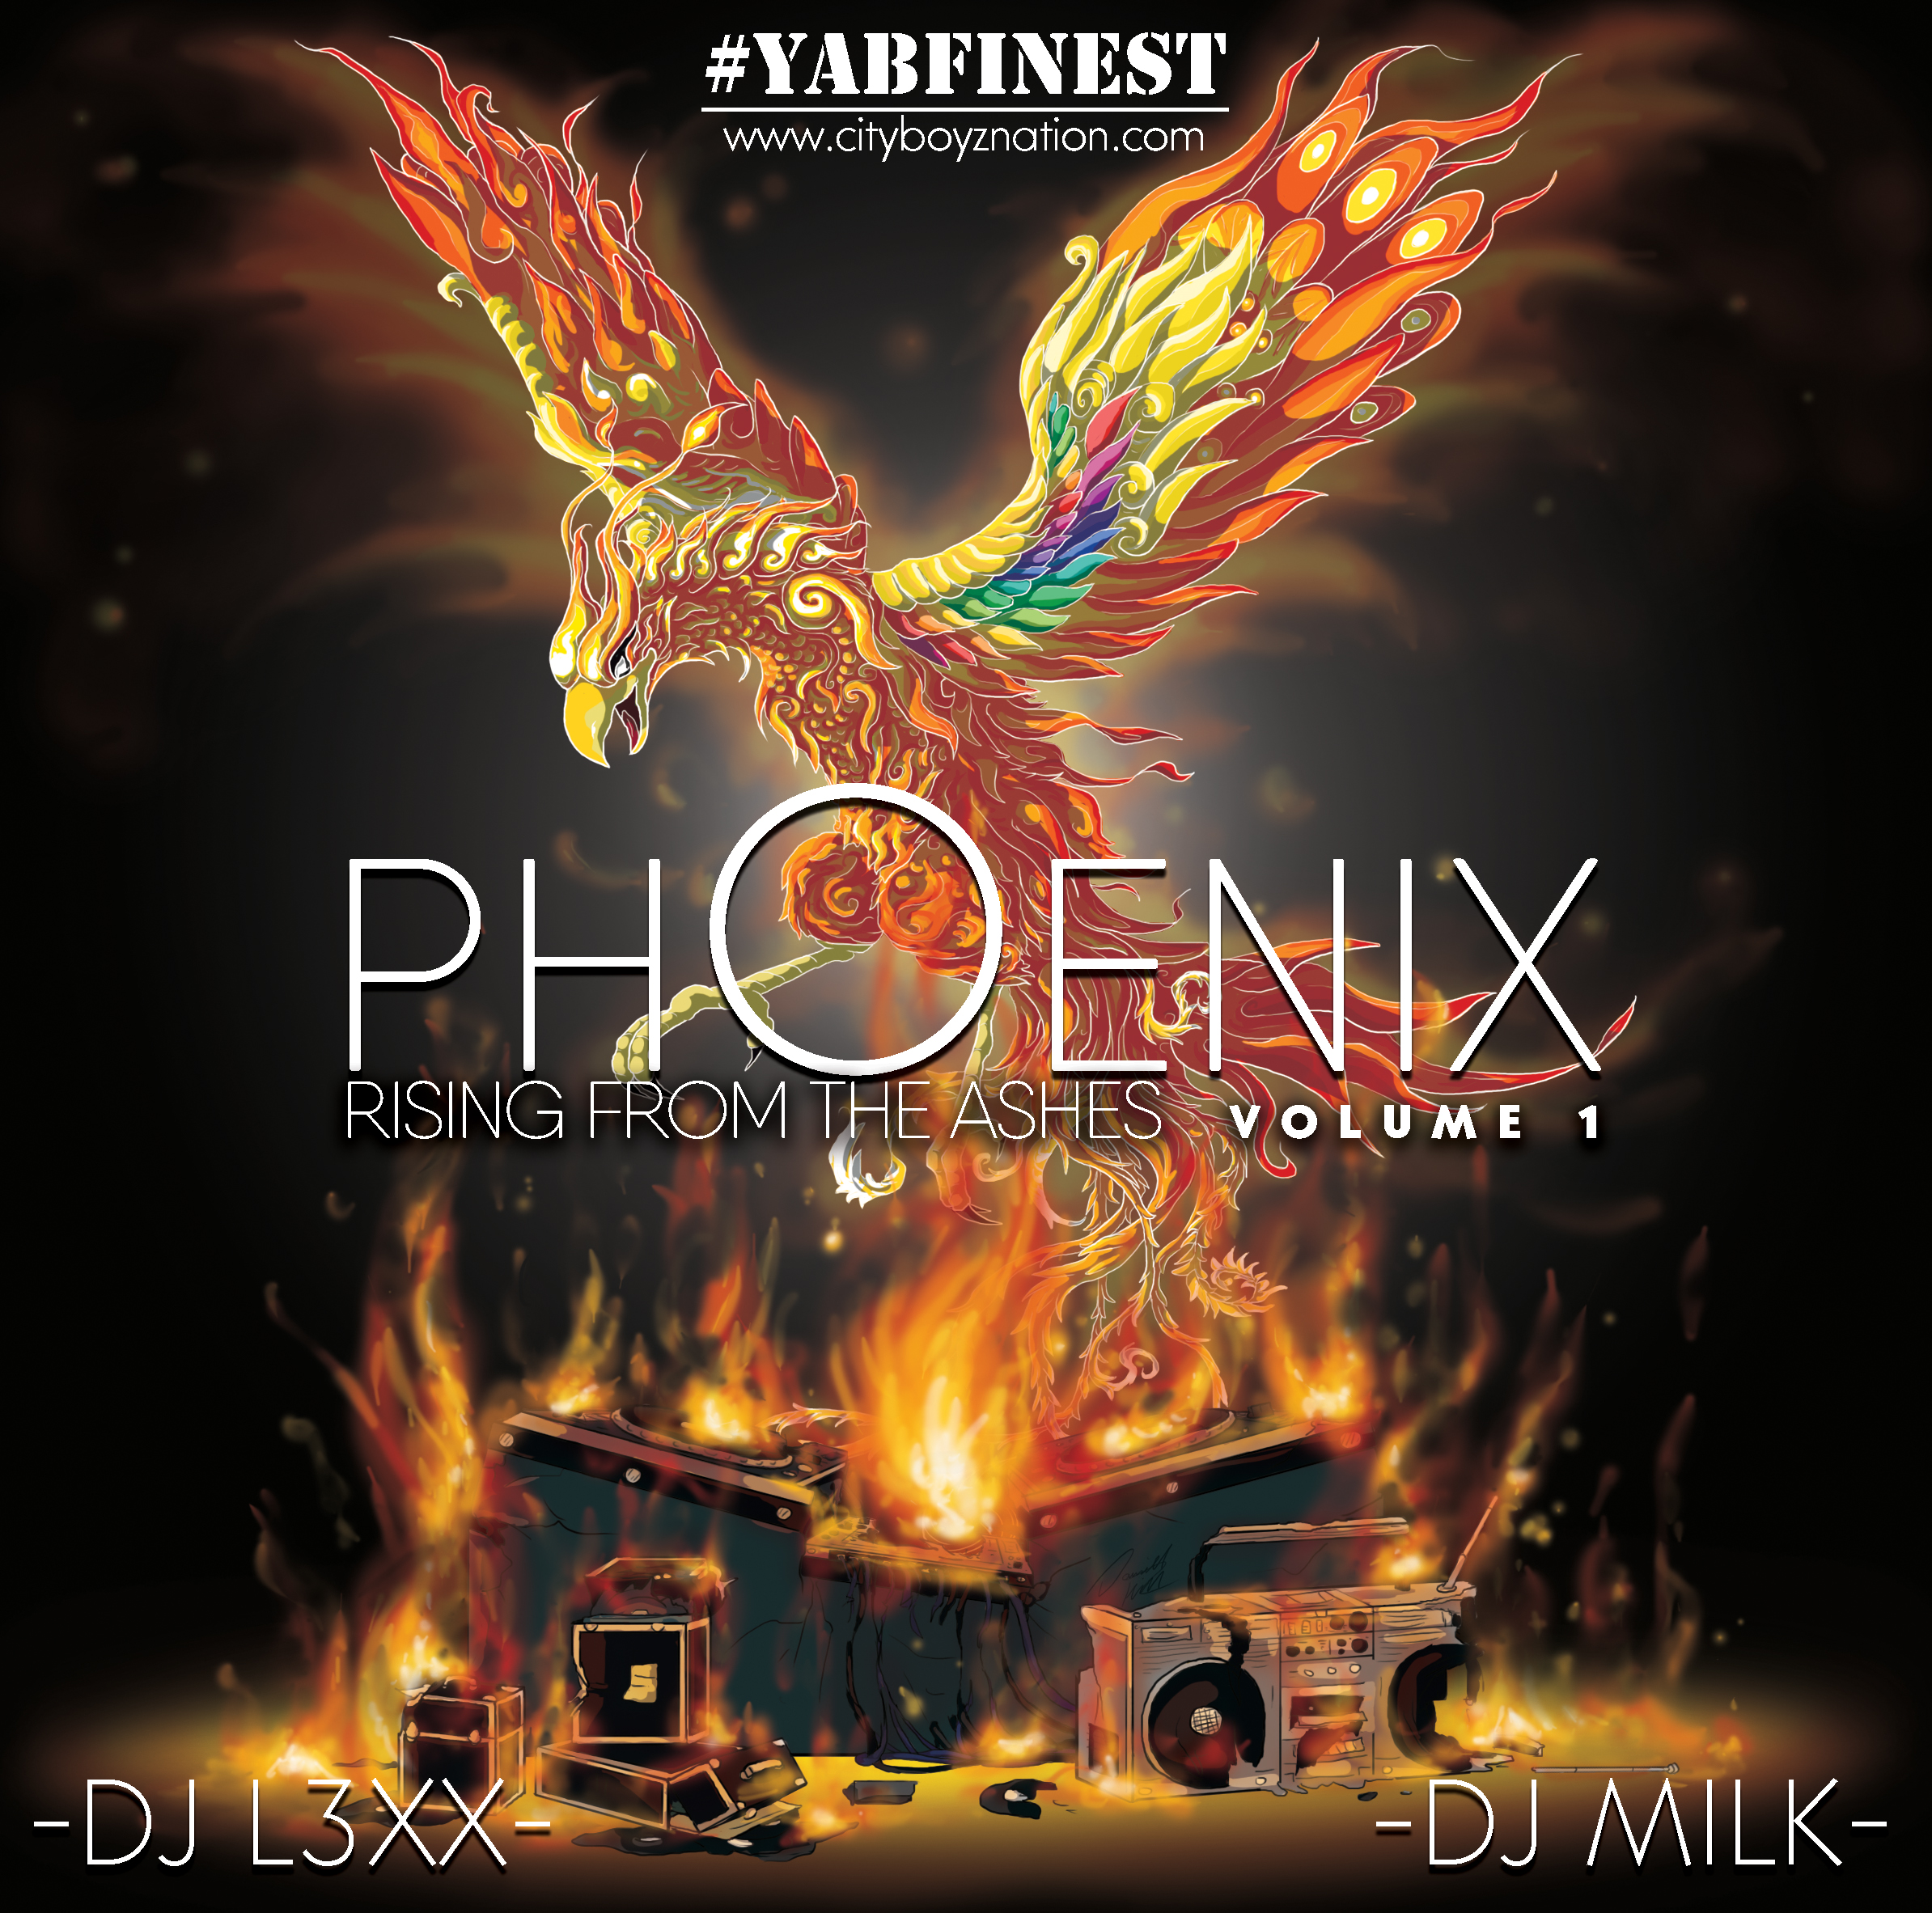 PHOENIX: Rising From the Ashes Vol. 1 ~ Album artwork created for DJ-Lexx Smith & DJ Milk As with each project I always find an area of the artwork i need to do, where i can really push a skill the furthest. With this one I focused on hand painting the flames to bring a more realistic feel to my usually line-heavy artwork. Also using white line-work on the phoenix itself was an experiment to add to its 'glowing' look, and worked out even better than i expected.